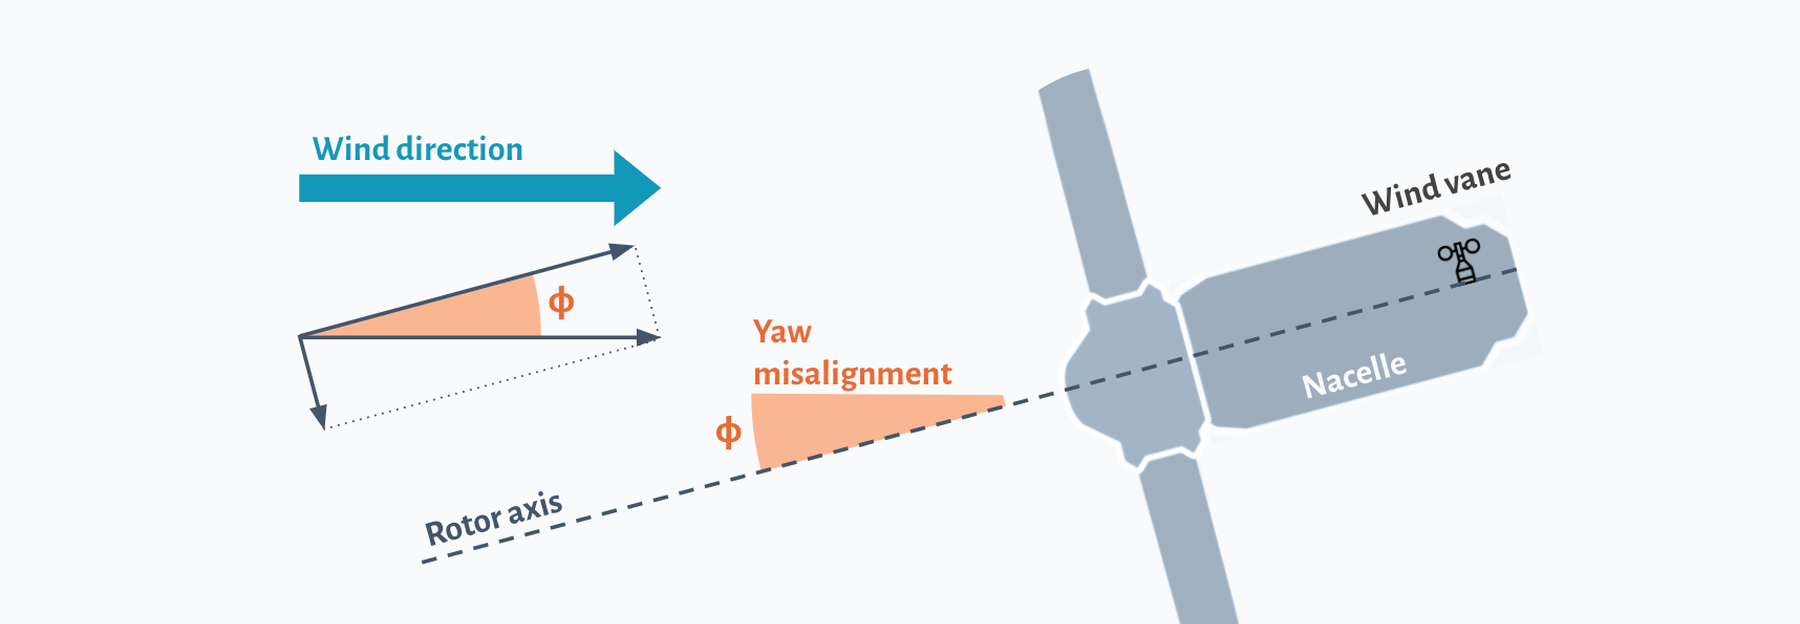 How to detect a yaw misalignment?